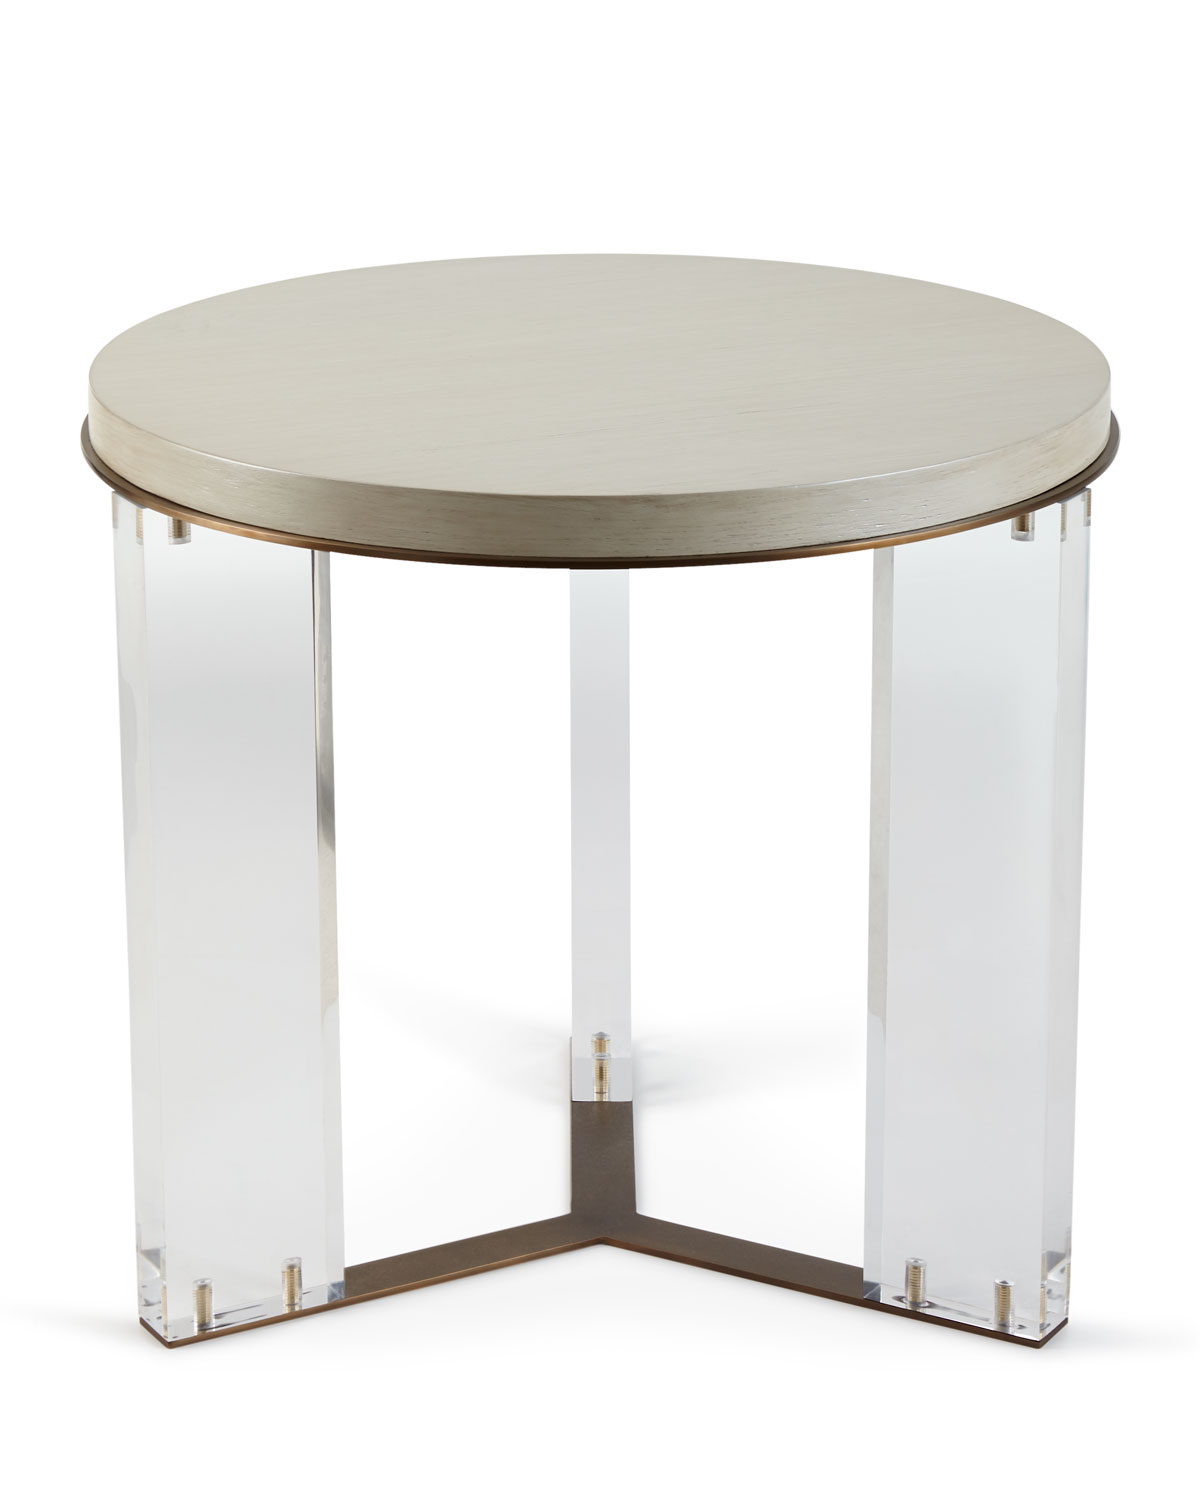 Ambellamalone Acrylic Leg Side Table